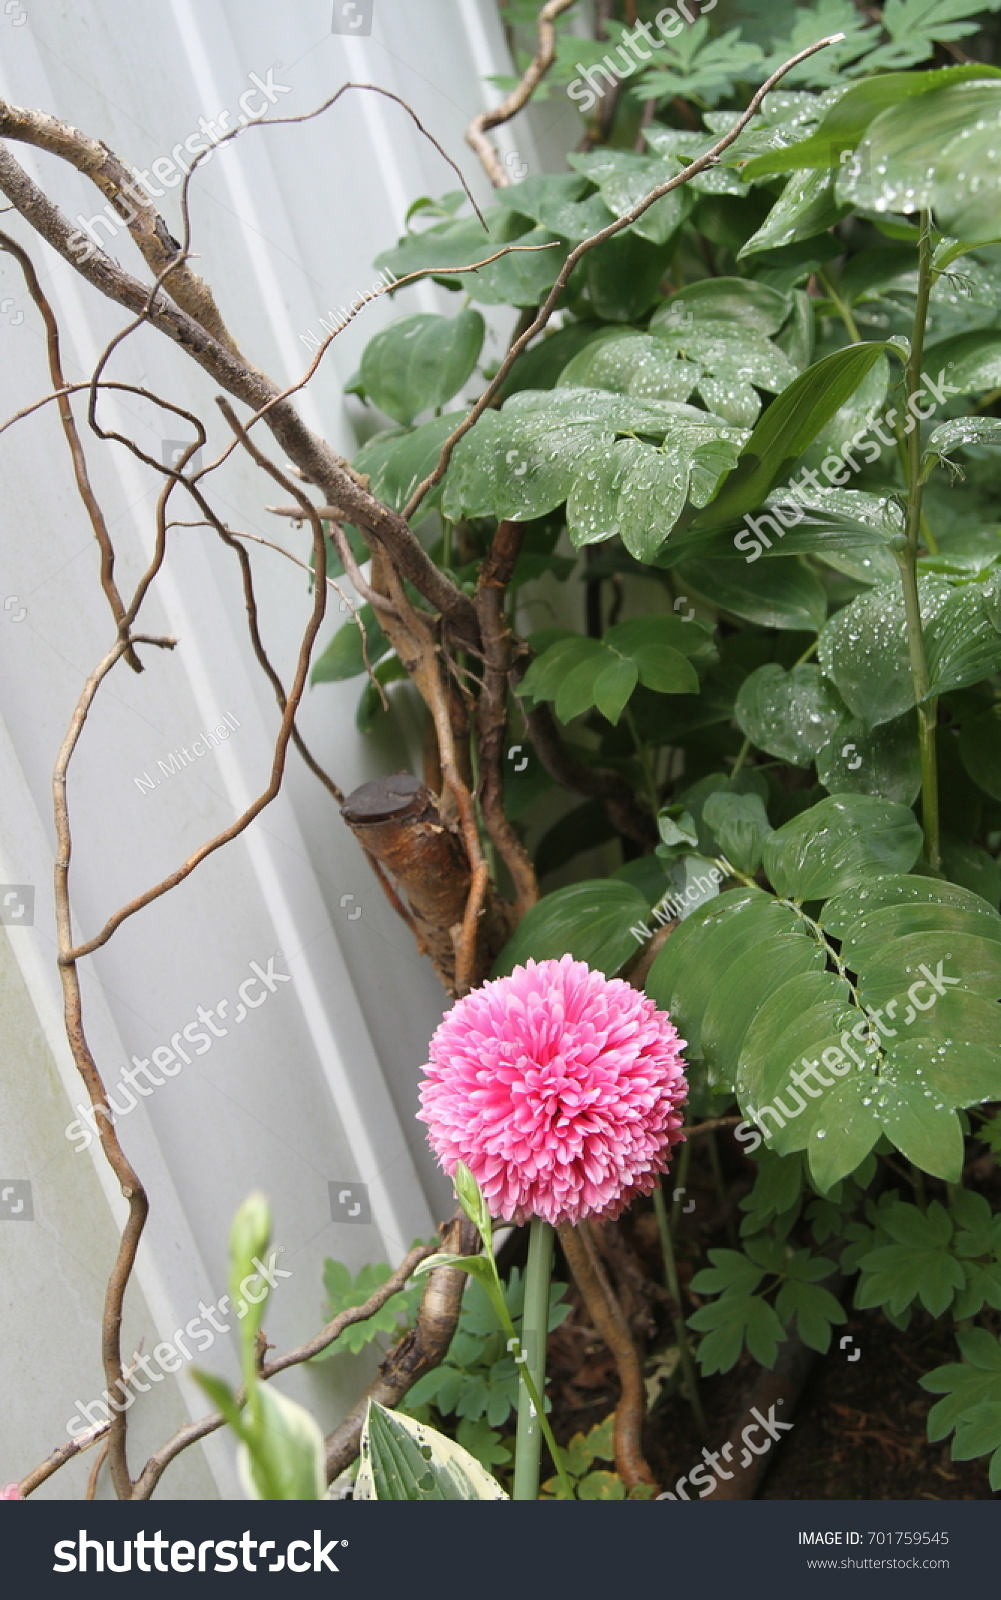 Round Pink Flower Garden Stock Photo 100 Legal Protection